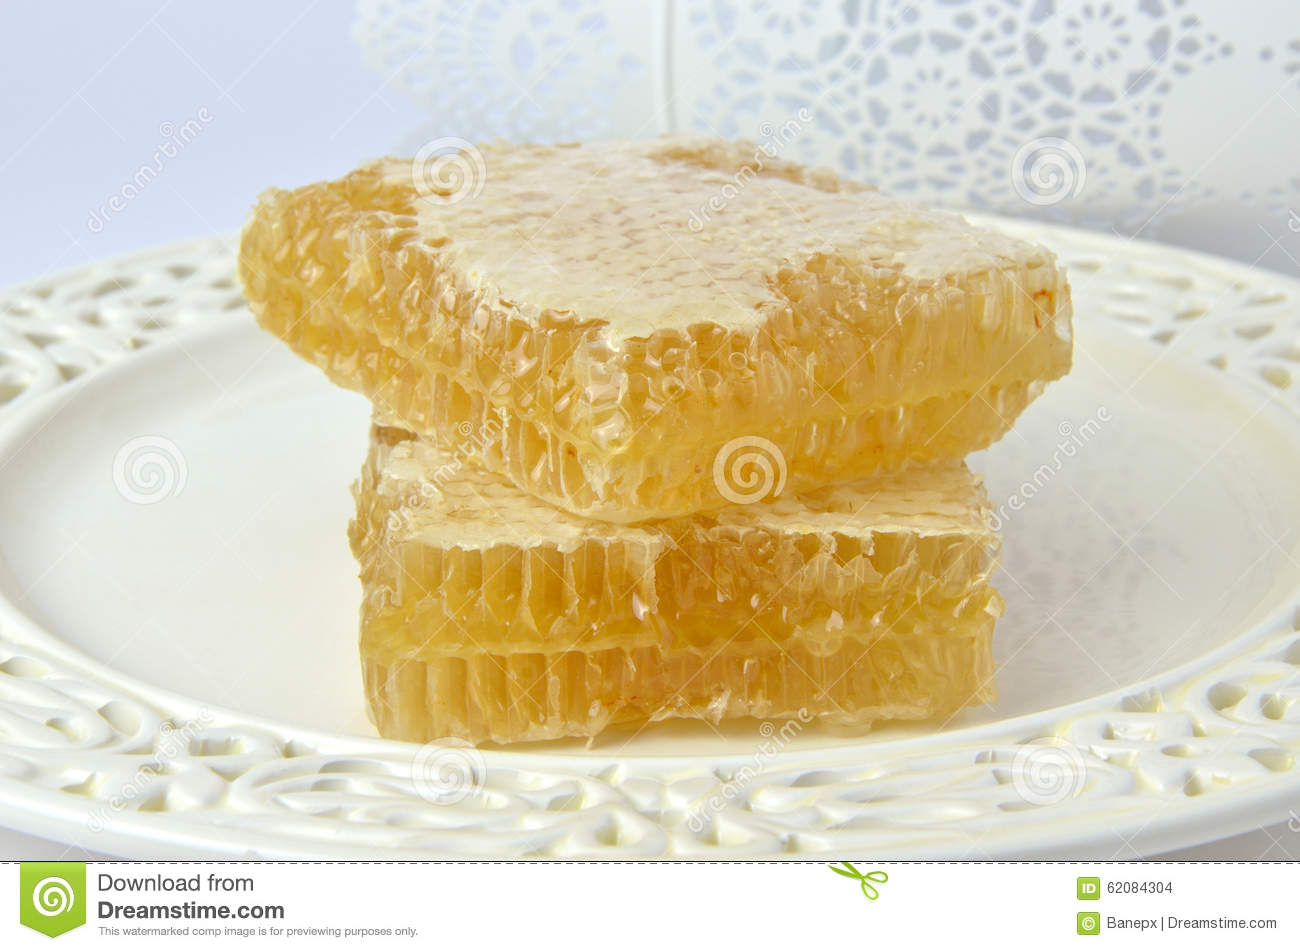 how to eat honeycomb fresh